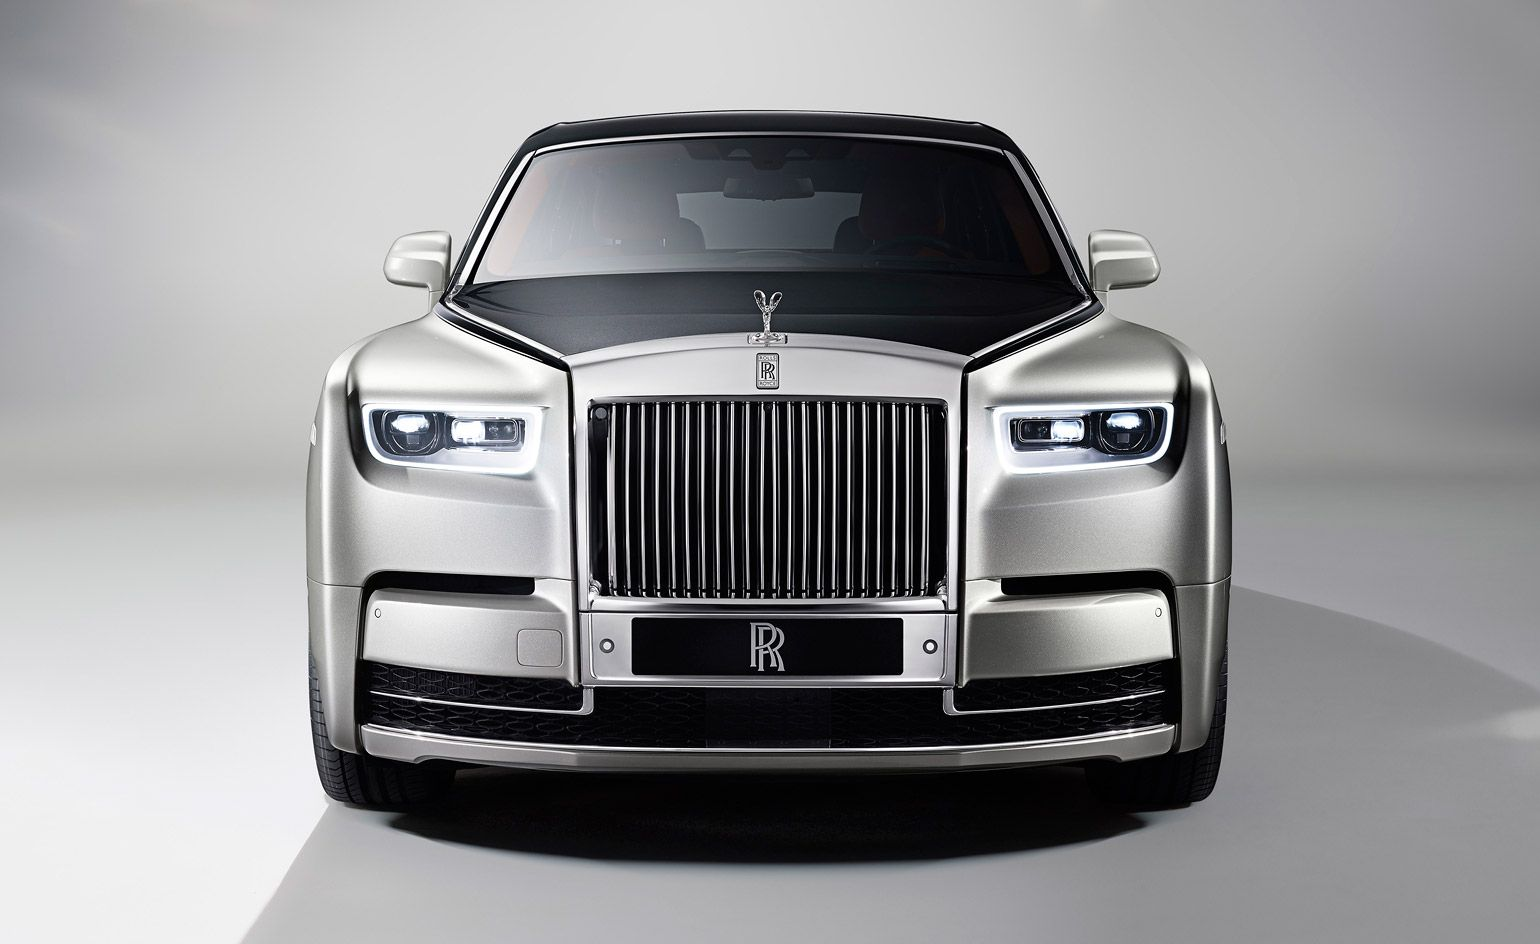 The New Phantom Is A Triumphant Expression Of Rolls Royce S Titanic Ambition Rolls Royce Phantom New Rolls Royce Rolls Royce Wallpaper